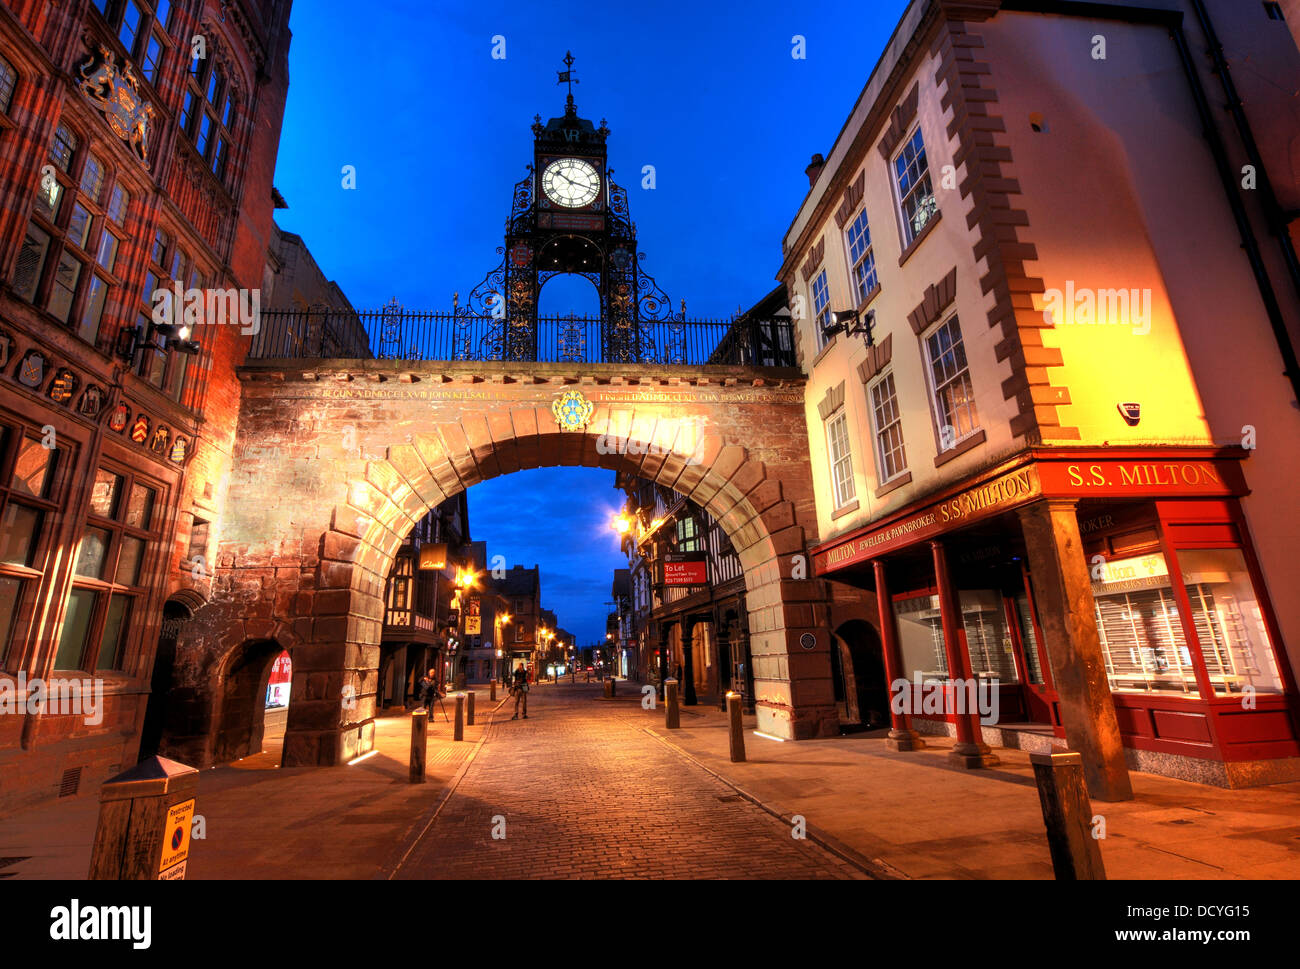 NW,North,West,classic,history,historic,Cheshire,West,and,CWAC,east,tourist,tourism,council,local,authority,gem,gems,shot,nightshot,Eastgate,Clock,which,is,said,to,be,the,most,photographed,clock,in,England,after,Big,Ben,Chester,City,Night,at,Dusk,England,UK,Deva,Roman,victorian,victoria,Gotonysmith Chester is a city in Cheshire,England. Lying on the River Dee,close to the border with Wales,it is home to 120,622 inhabitants,and,is,the,largest,and,most,populous,settlement,of,the,wider,unitary,authority,area,of,Cheshire,West,and,Chester,which had a population of 328,100,according,to,the,2001,Census.,Chester,was,granted,city,status,in,1541.,Chester,was,founded,as,a,or,Roman,fort,with,the,name,Deva,Victrix,in,the,year,79,by,the,Roman,Legio,II,Adiutrix,during,the,reign,of,the,Emperor,Vespasian.,Chesters,four,main,roads,Eastgate,Northgate,Watergate and Bridge,follow routes laid out at this time – almost 2,000,years,ago.,One,of,the,three,main,Roman,army,bases,Deva,later,became,a,major,settlement,in,the,Roman,province,of,Britannia.,castrum,Buy Pictures of,Buy Images Of